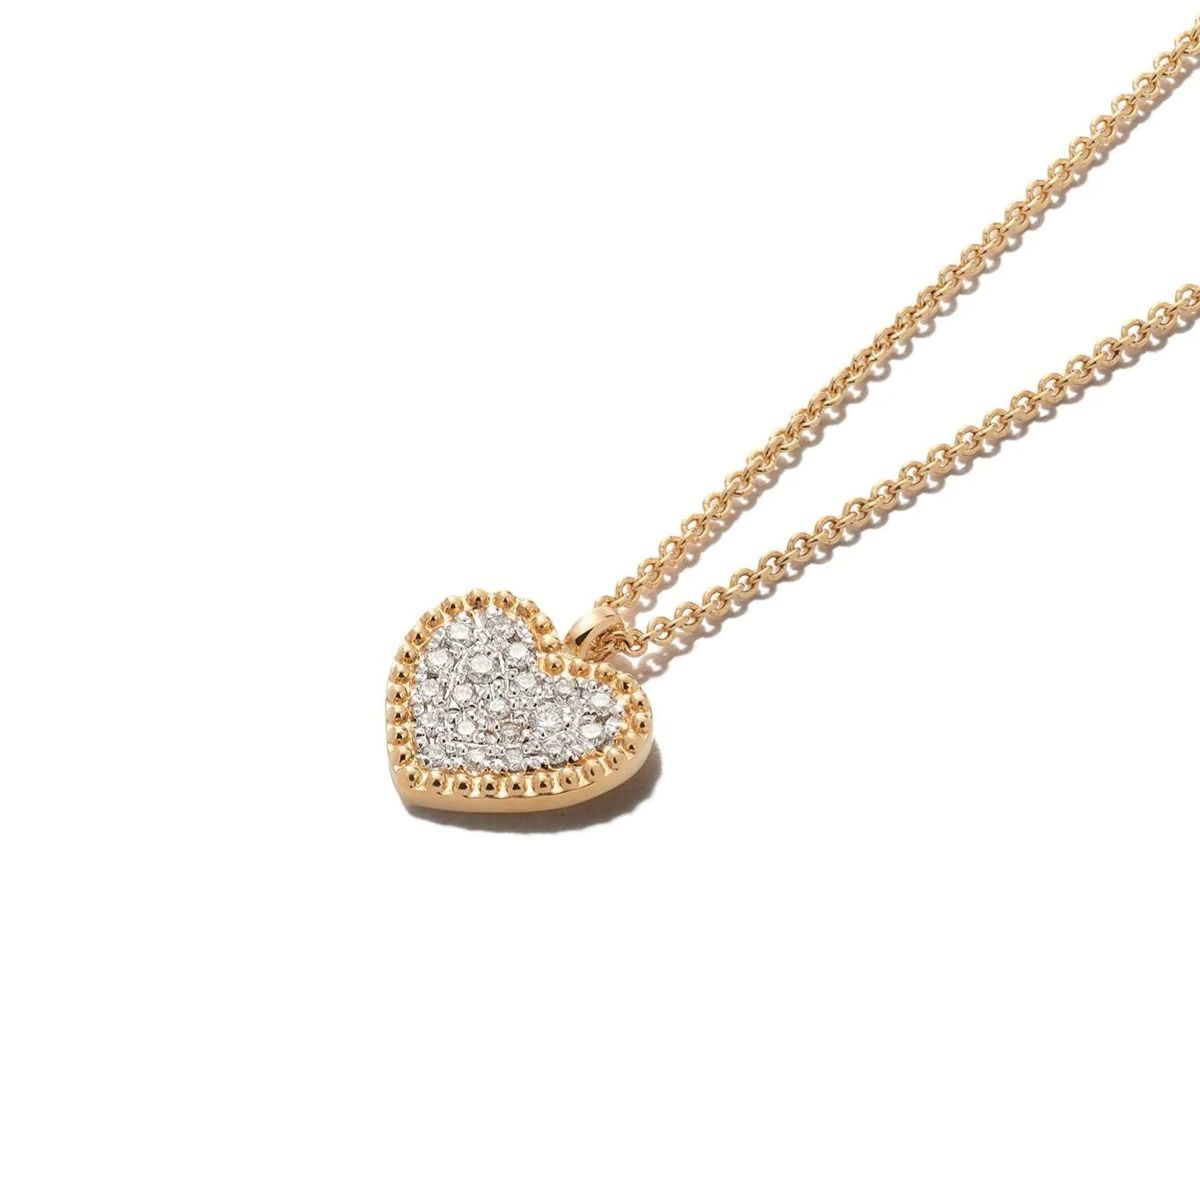 mye-heart-beading-pave-diamond-necklace-in-18k-yellow-gold